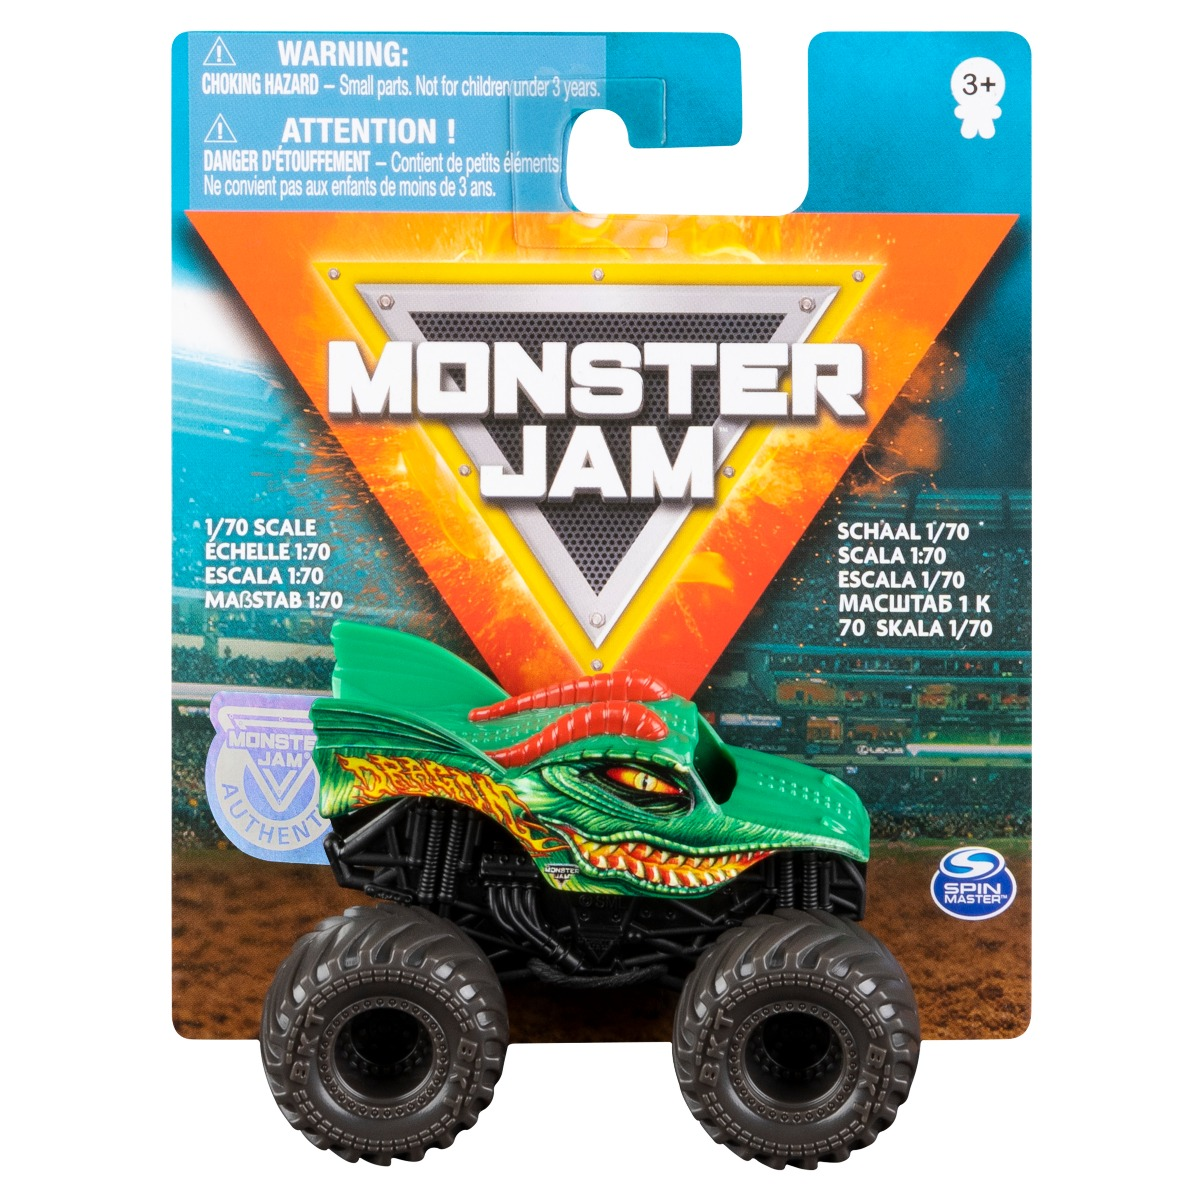 Masinuta Monster Jam, Dragon Trucks, 20108582